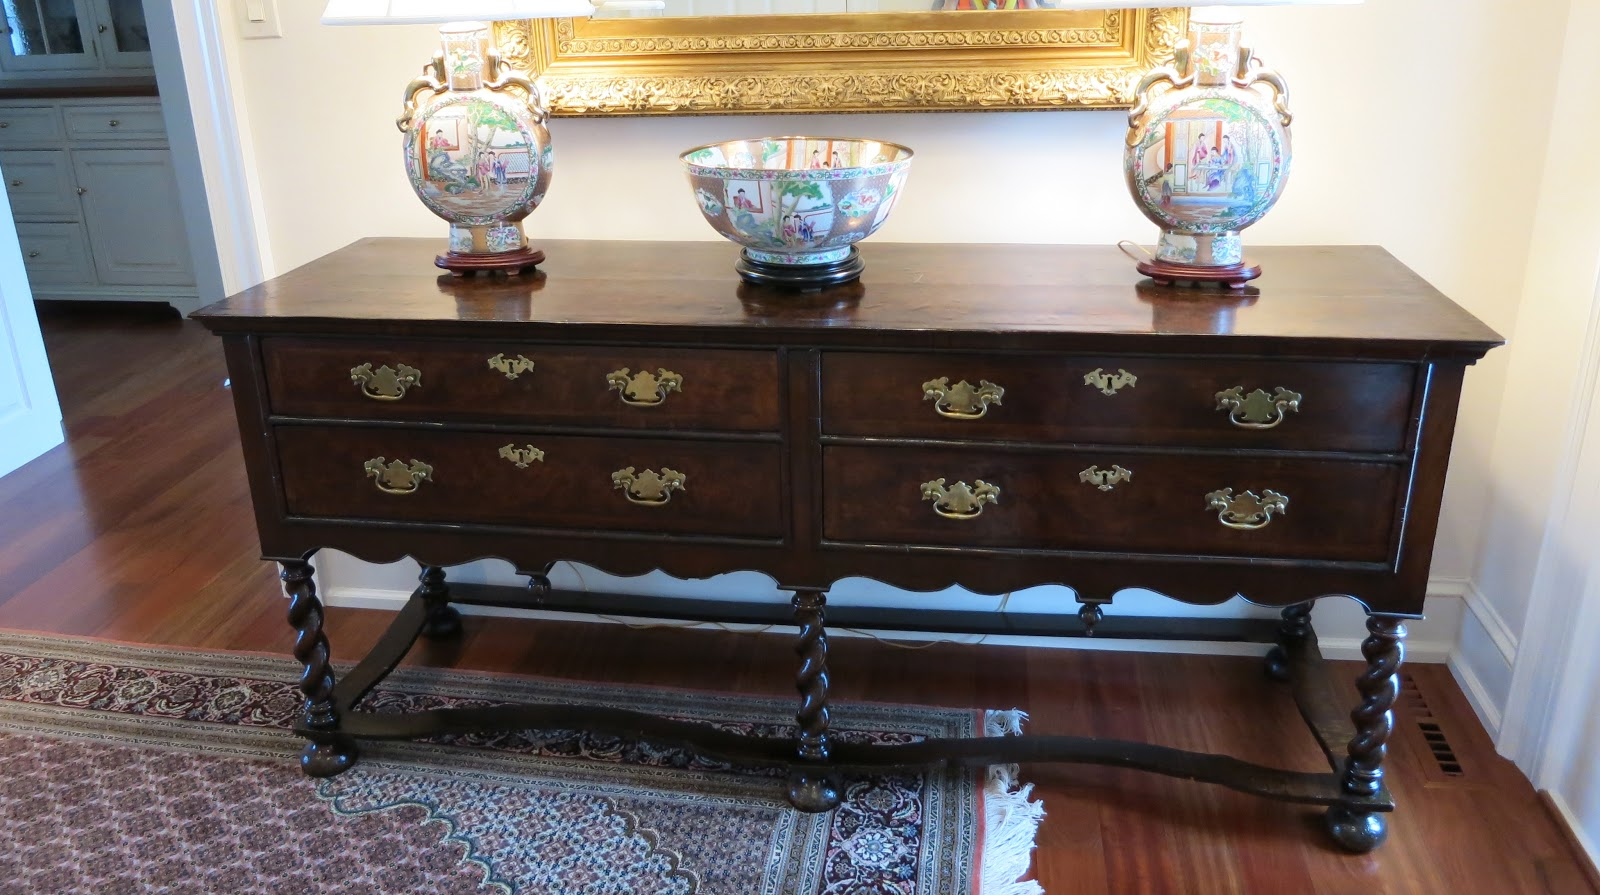 Gracious interiors everything english when you enter the first piece that greets you is an english dresser with barley twist legs stretcher base and william and mary ball feet m4hsunfo